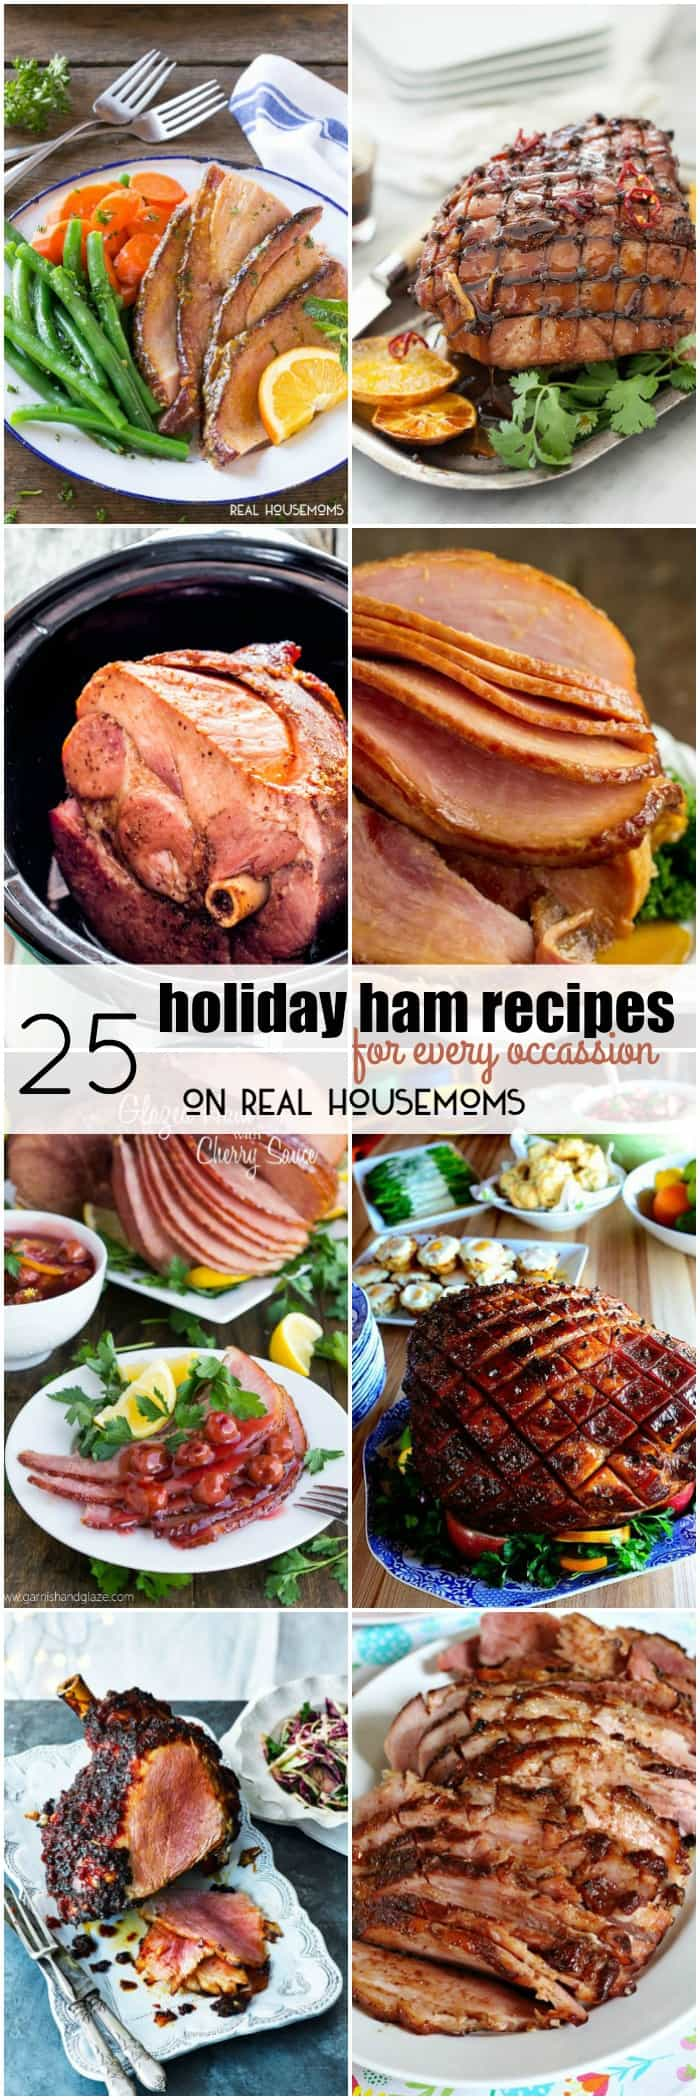 Gather your family around the table and get ready to dig into these 25 Holiday Ham Recipes for Every Occasion! From Easter to Christmas and everything in between, these hams are sure to please!